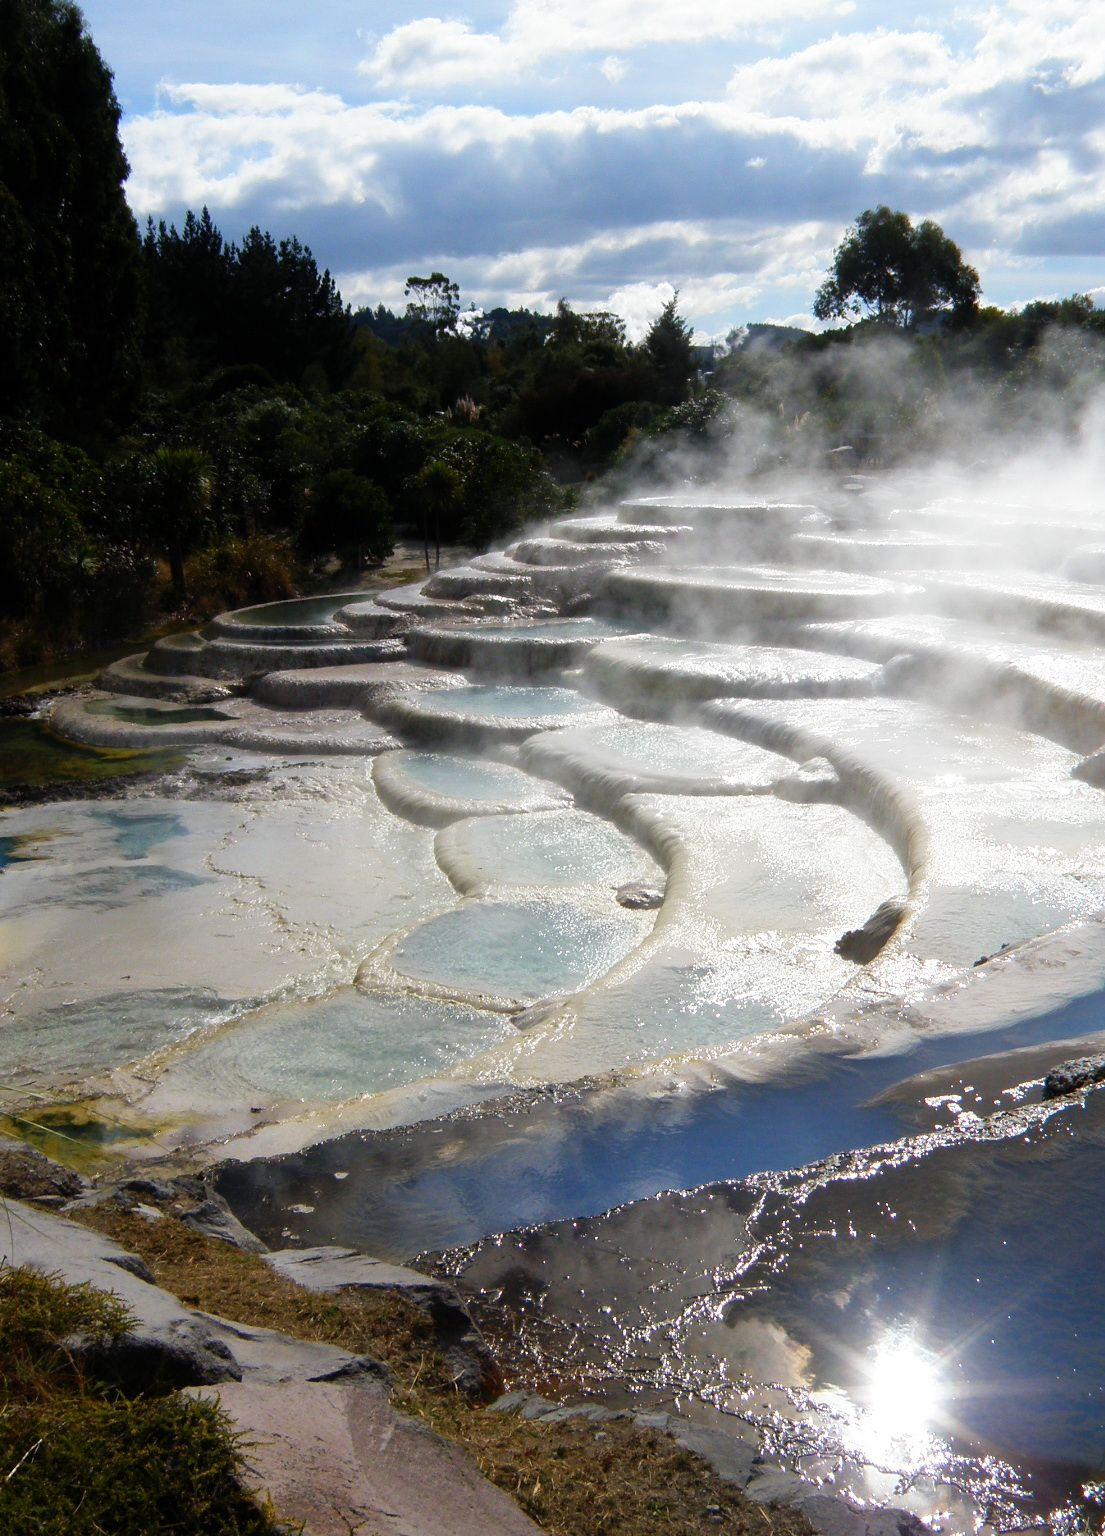 Wairakei thermal terraces in Rotorua, North Island, New Zealand (by fv3535).